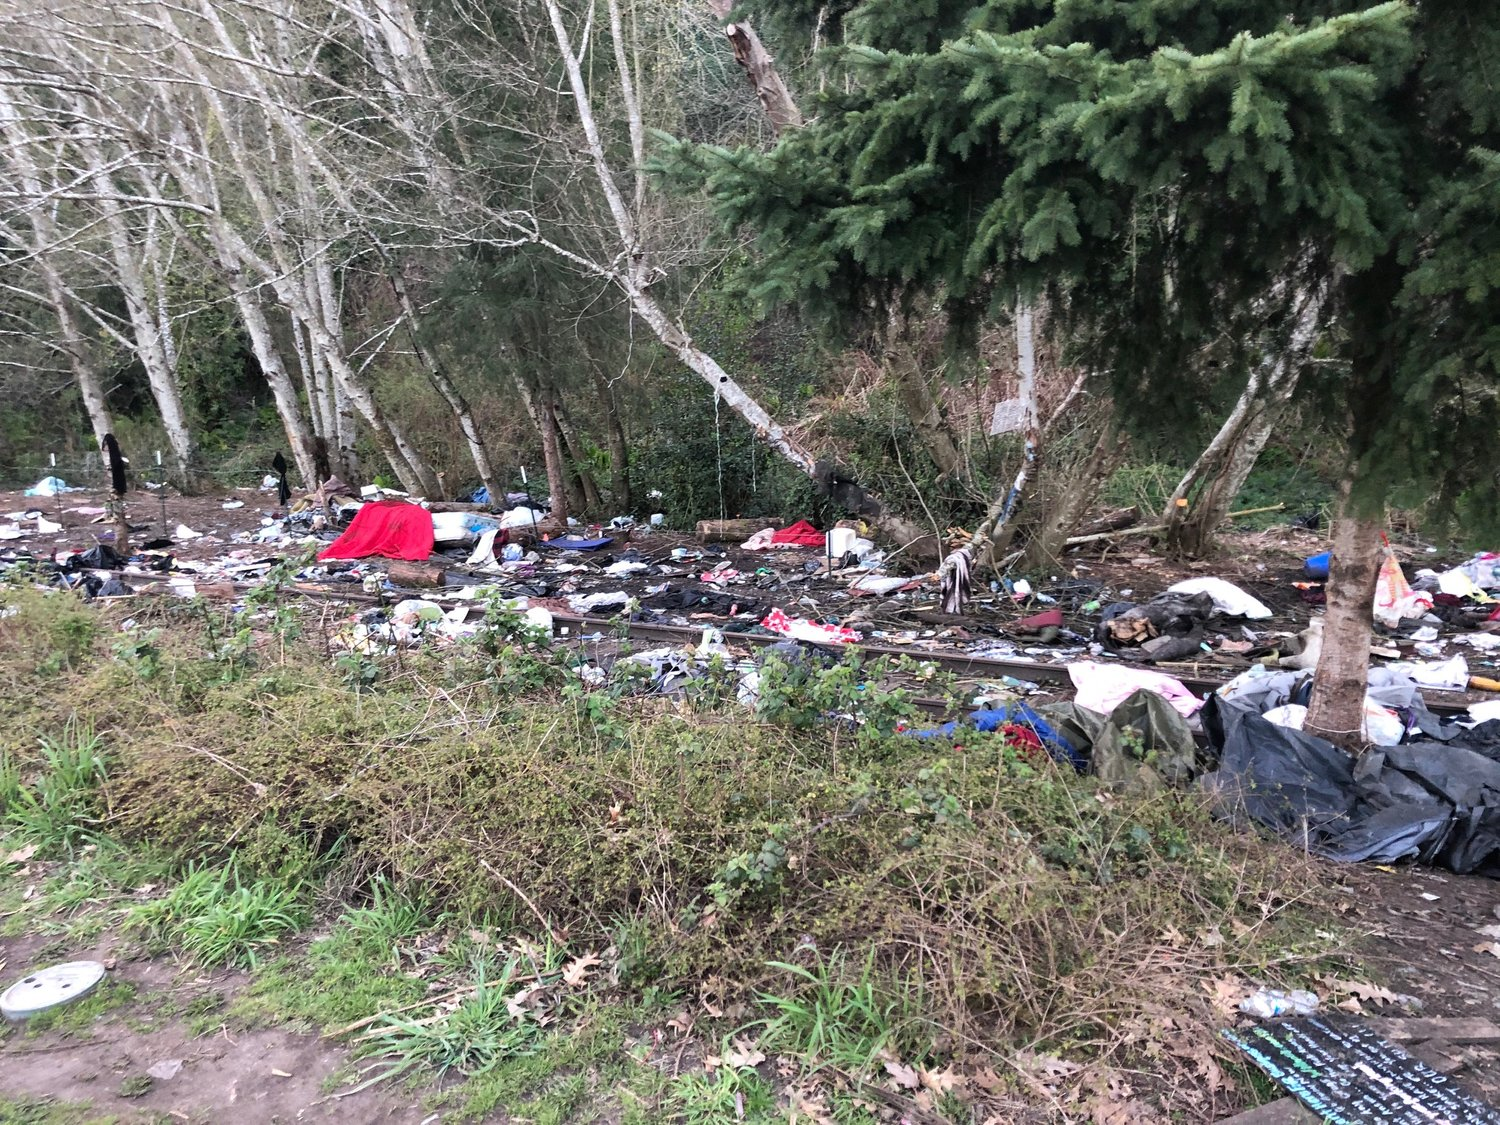 This shows a portion of the debris spread outside of the tents and other temporary shelters that are on private property along the west side of Deschutes Parkway across from Capitol Lake in Olympia. Image taken on April 5, 2021.